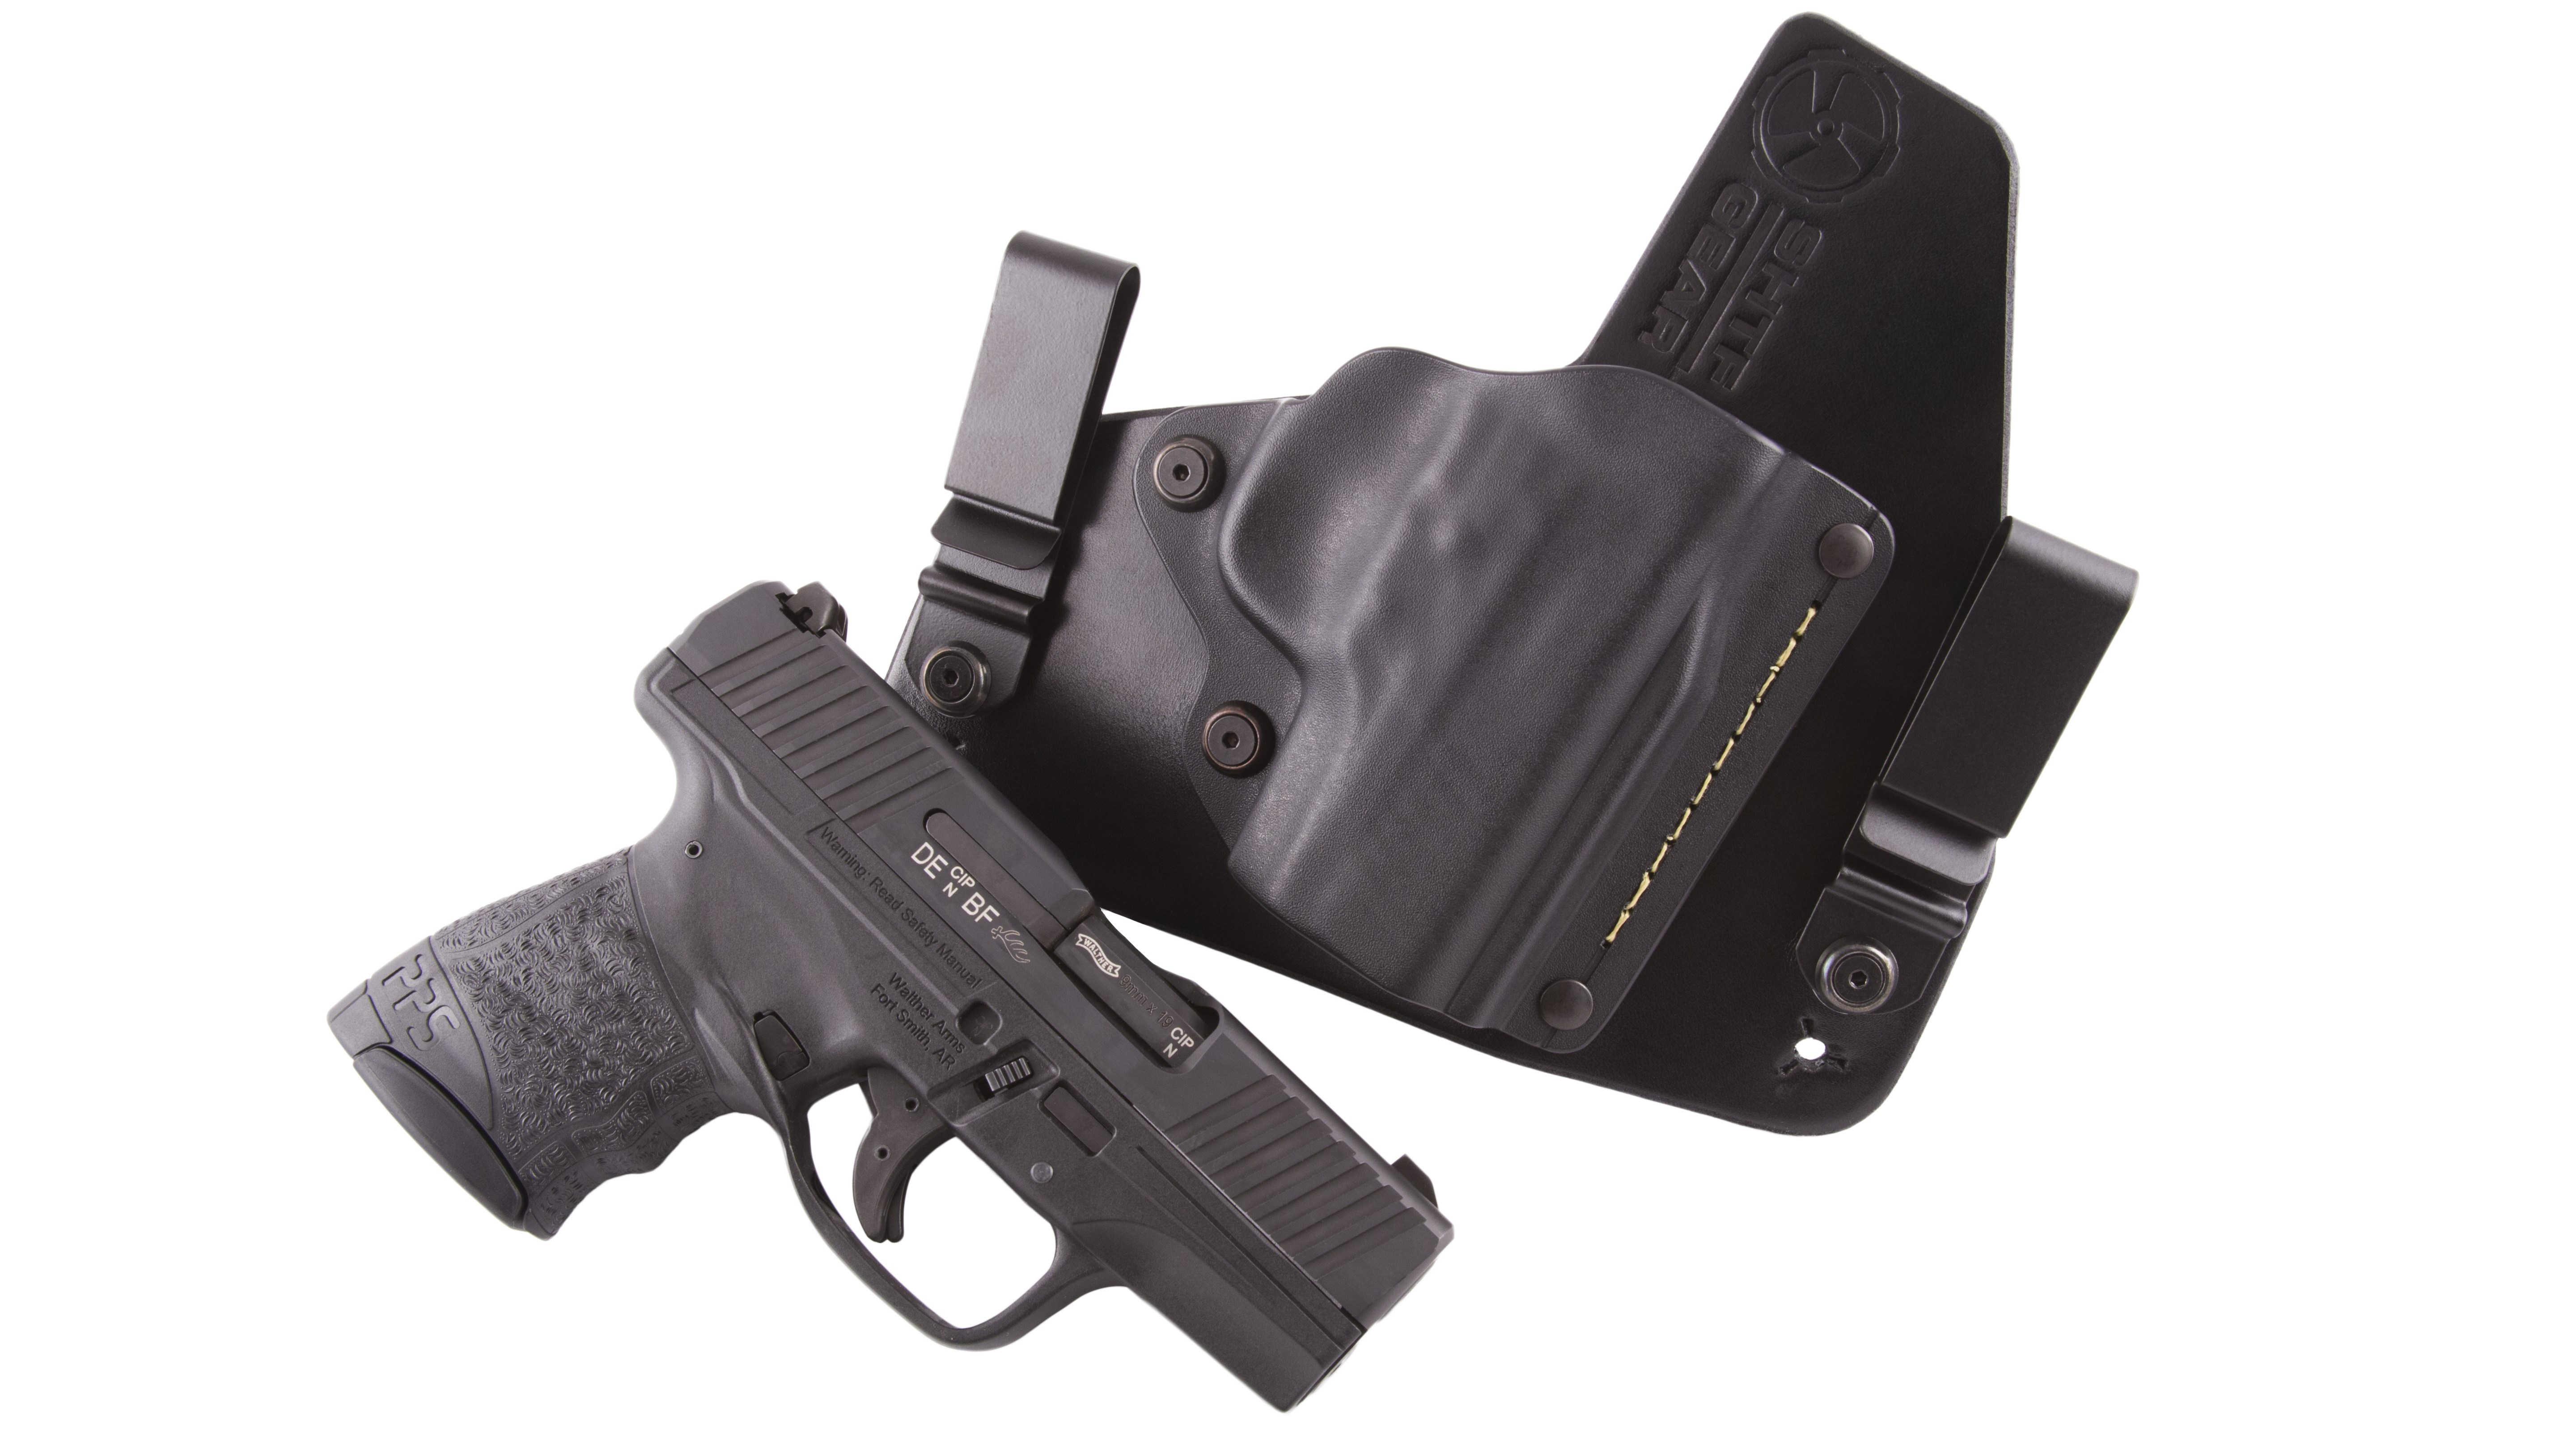 SHTF Gear ACE-1 Gen 2 Holster for Walther PPS-M2 | Jerking